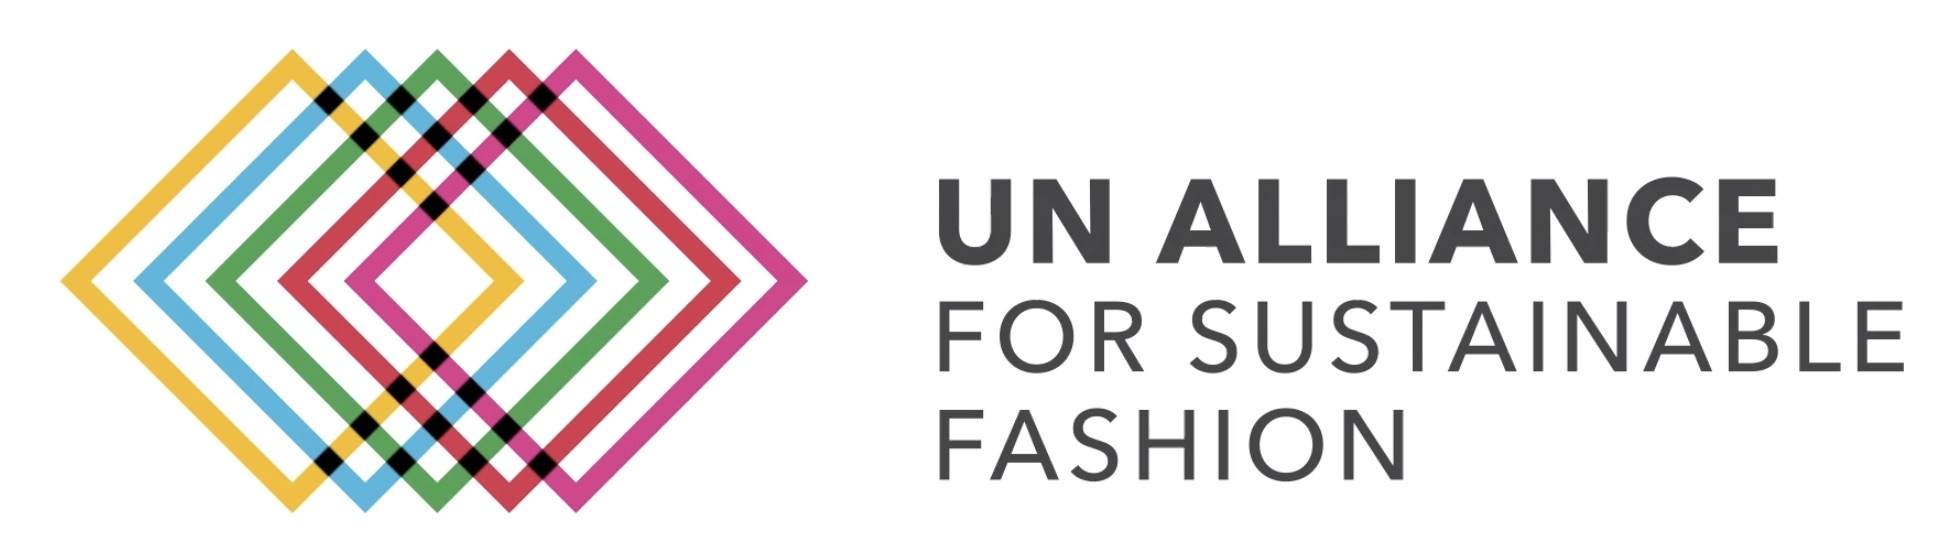 UN Alliance for Sustainable Fashion  is part of the  United Nations Environment  agencies. The fashion sector have a critical role to play in achieving the     Sustainable Development Goals.   The fashion industry is currently a  $2.4 trillion-dollar industry that employs around 60 million people worldwide —most of them women.